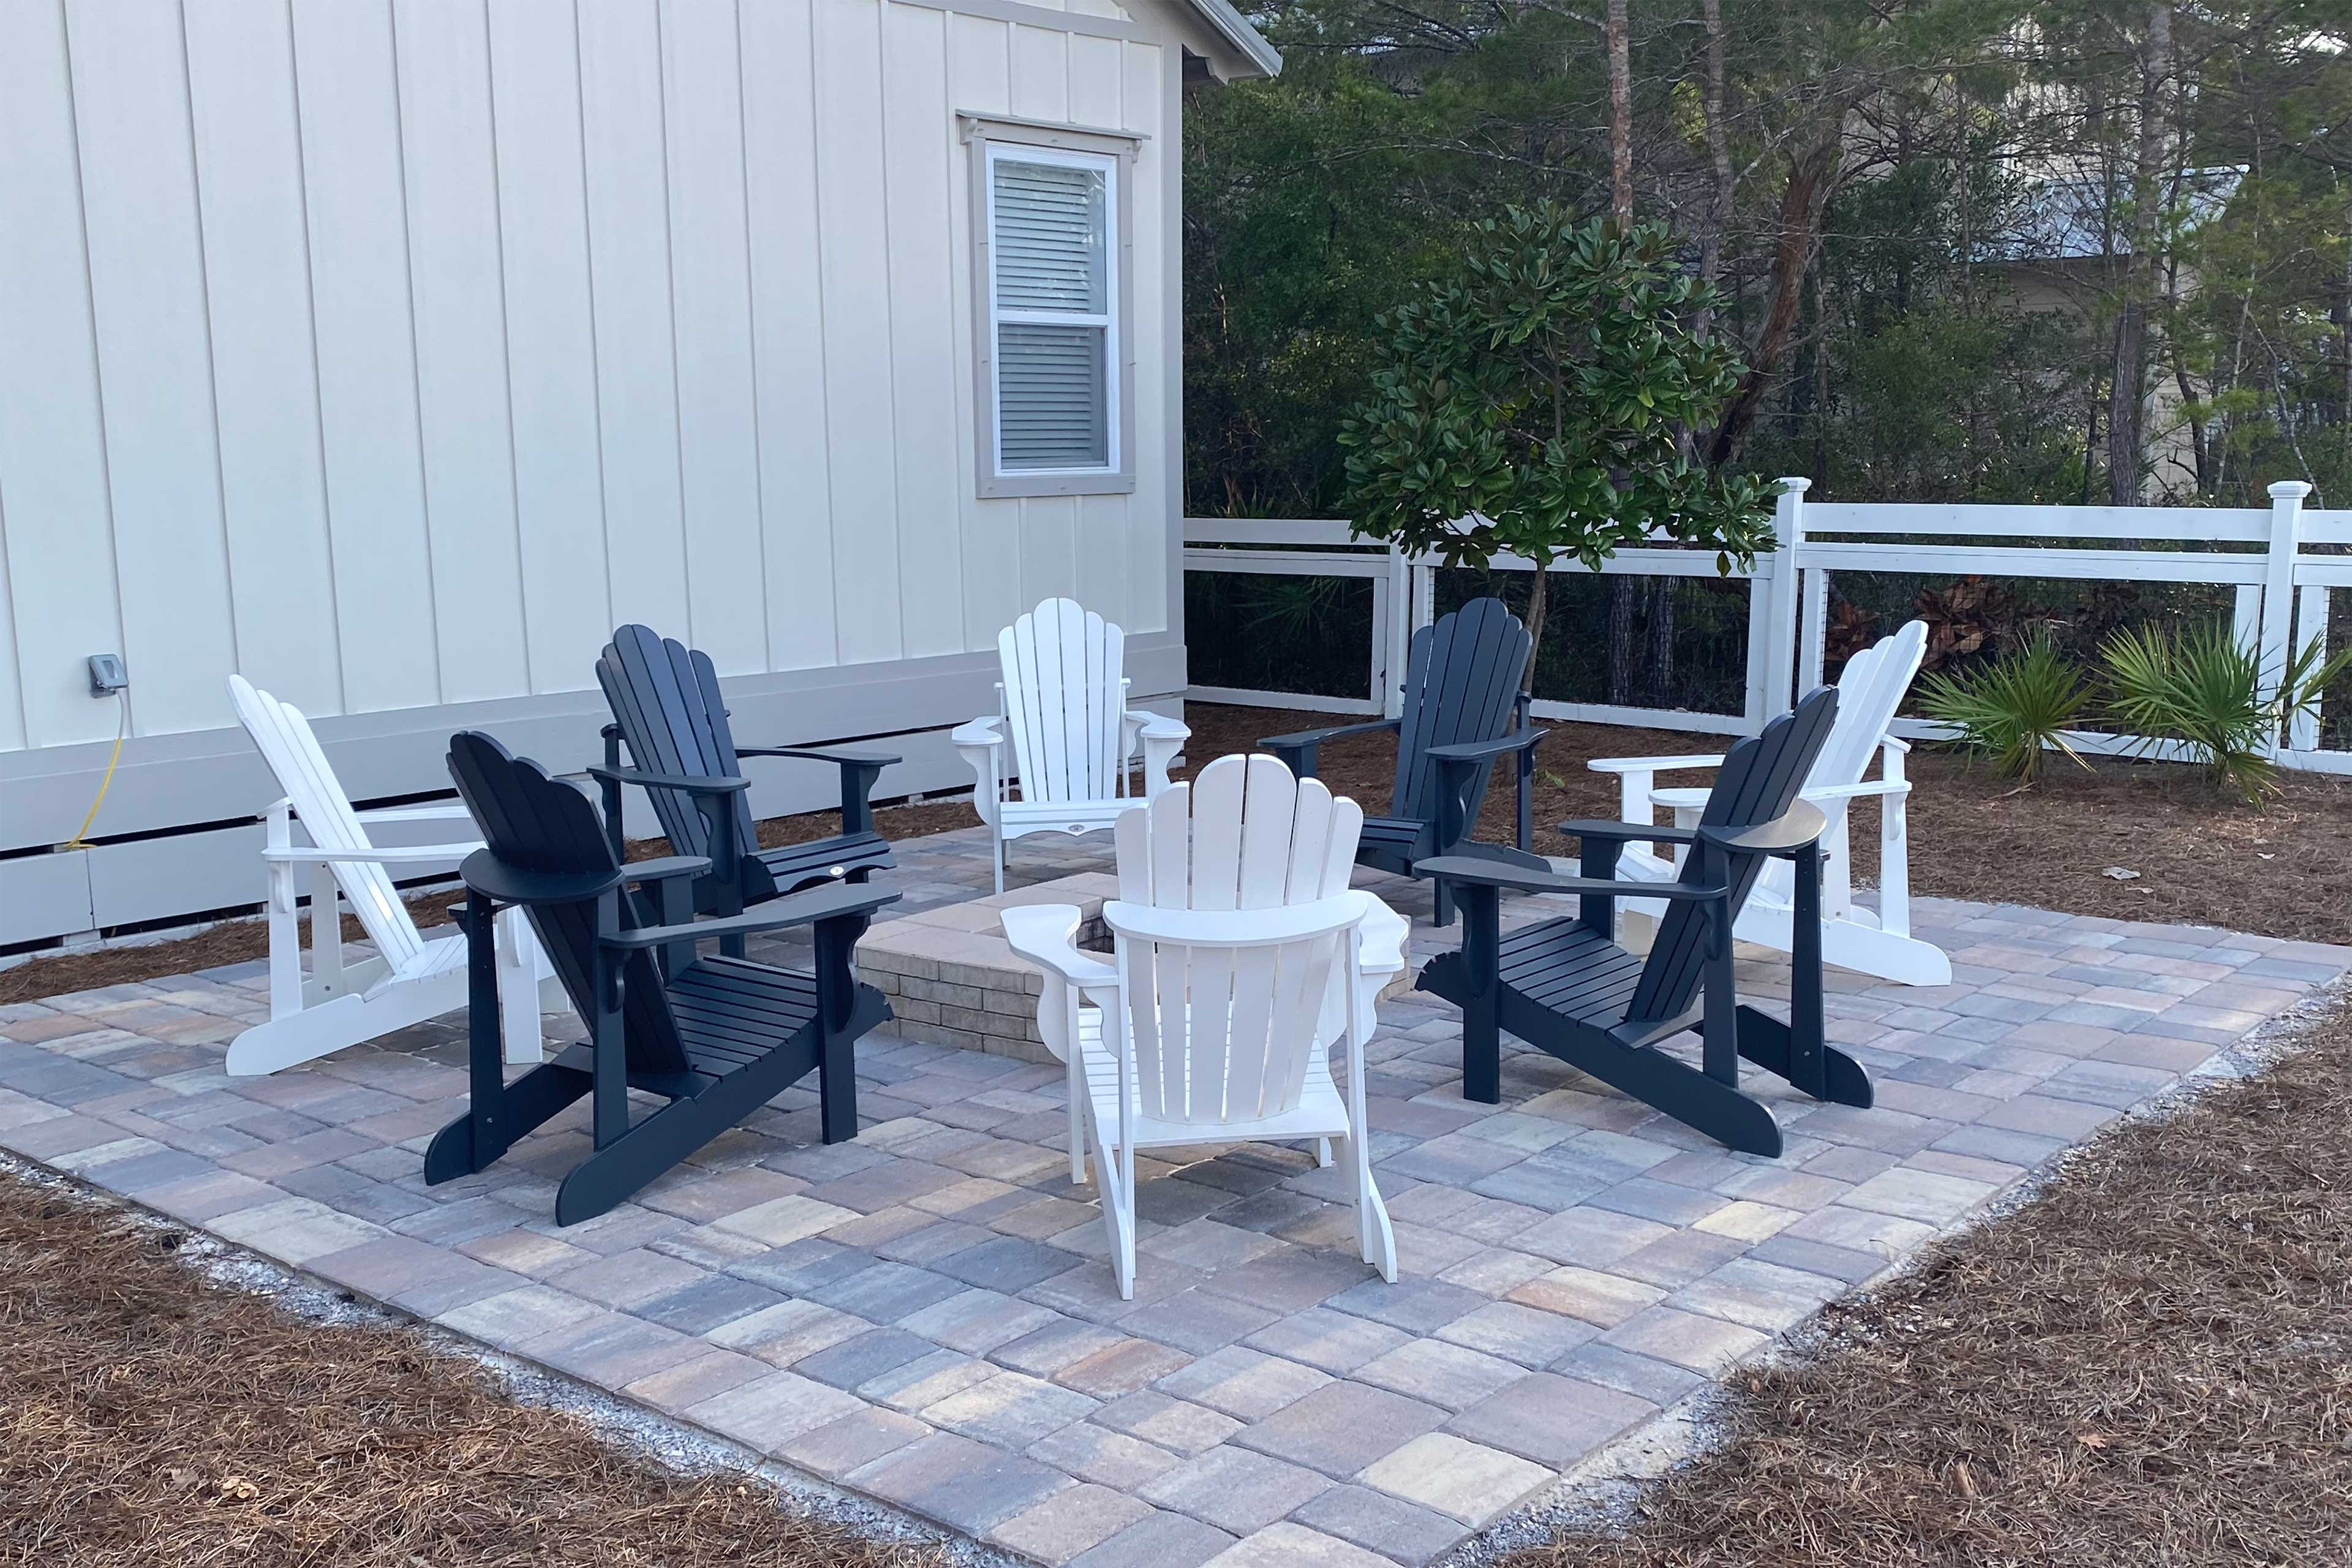 Spend quality time with your loved ones around the fire pit.